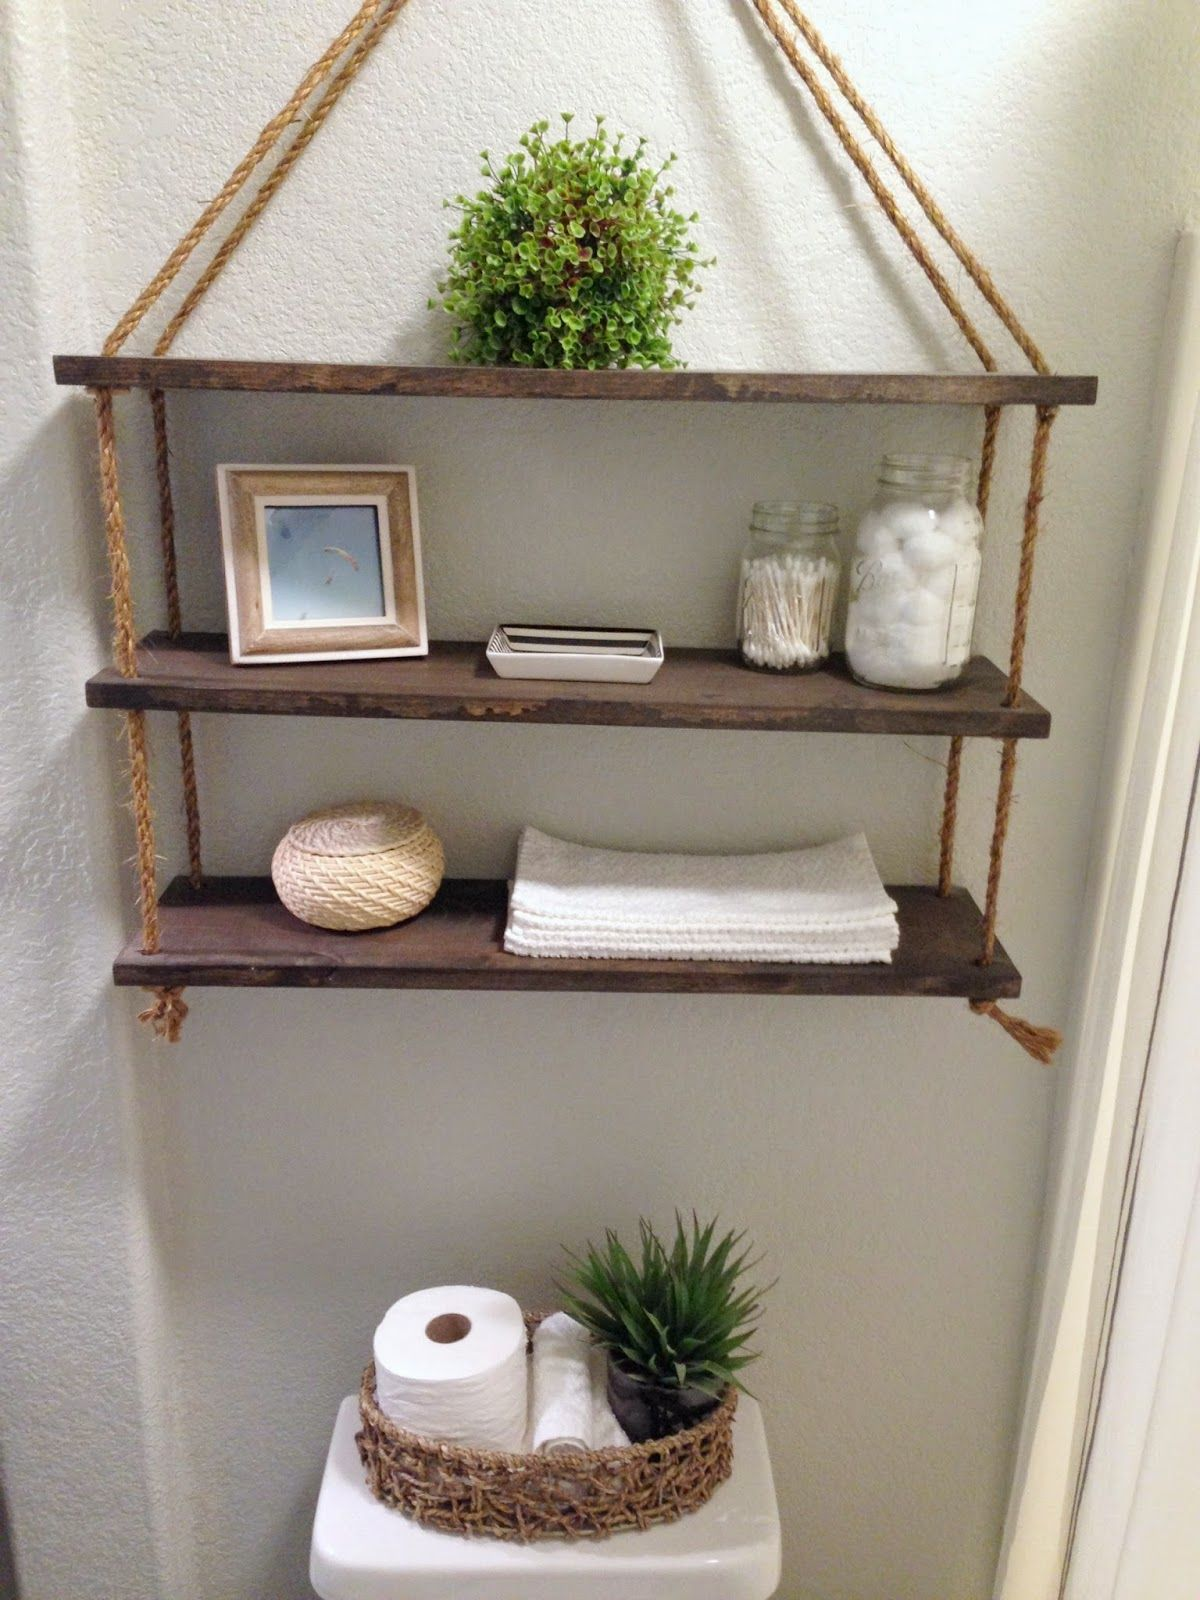 shelves floating cool tutorial nz nursery rustic shelving charming bathroom above uk australia ikea ideas diy baby toilet white designs